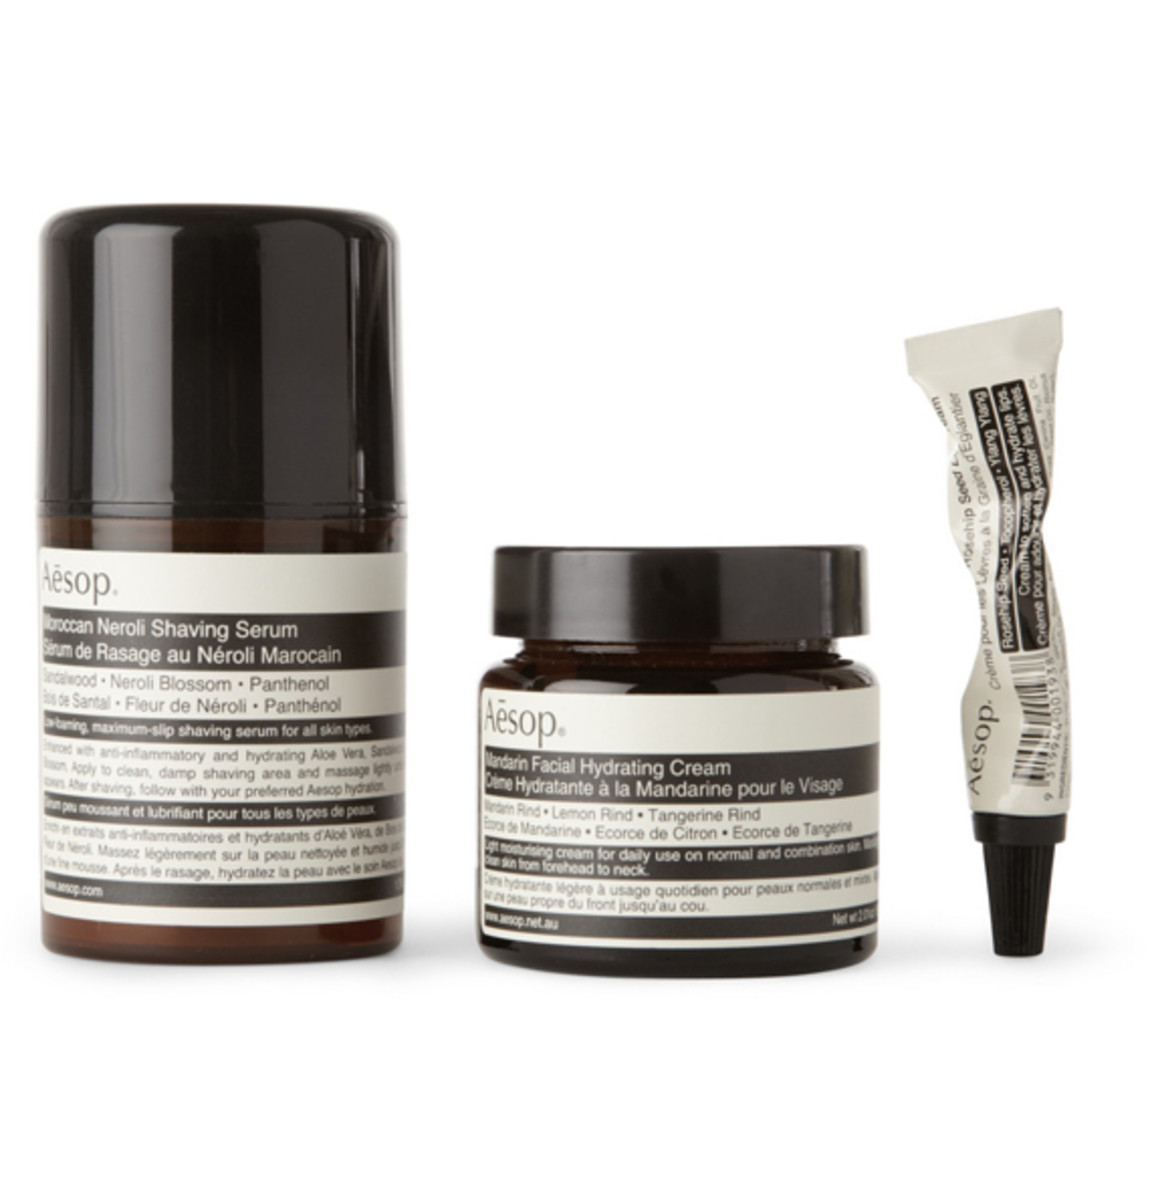 mr-porter-aesop-dapper-gentleman-grooming-kit-03